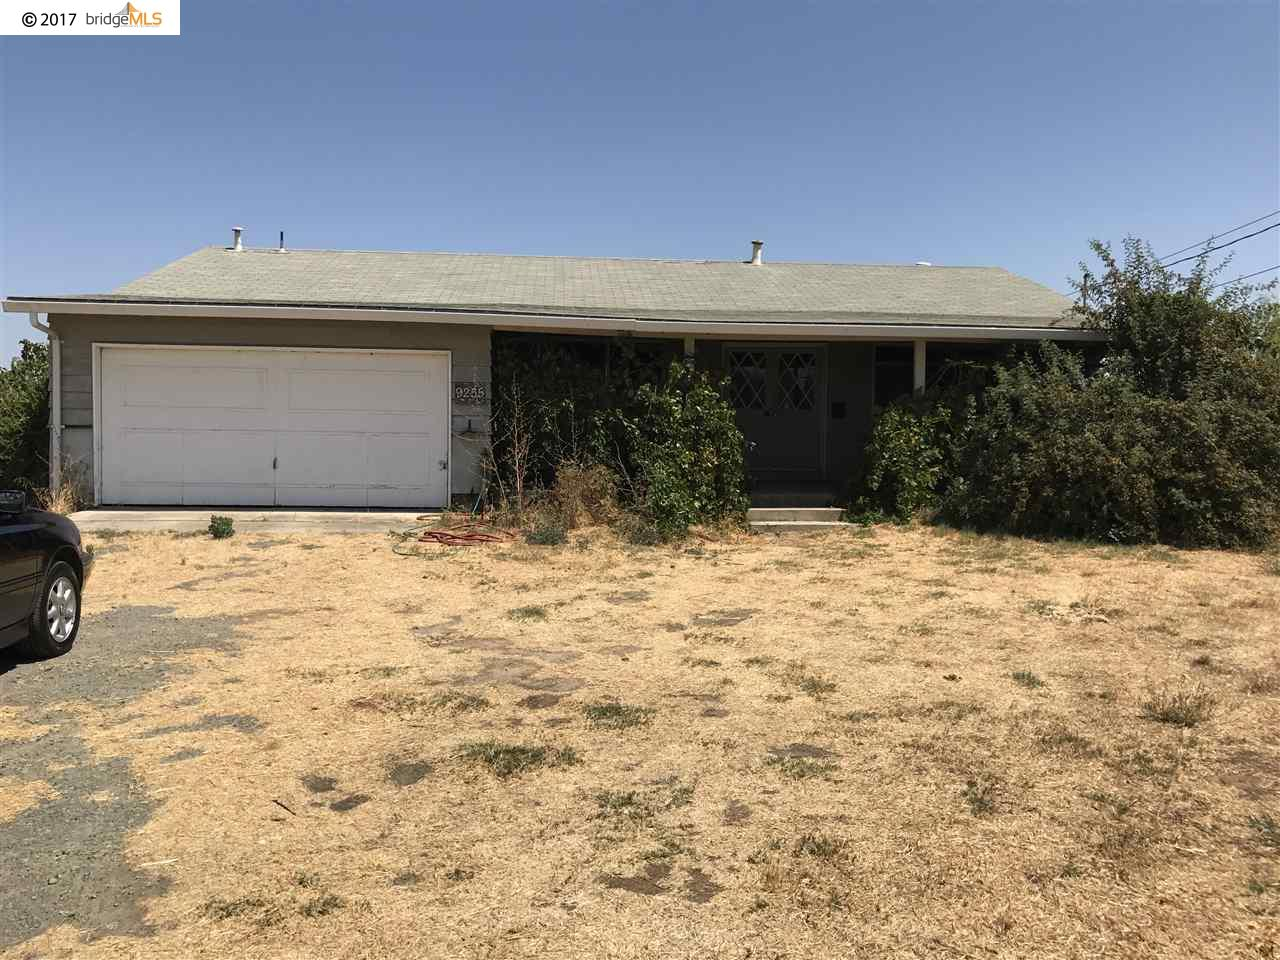 Single Family Home for Sale at 9255 Byron Hwy 9255 Byron Hwy Brentwood, California 94513 United States